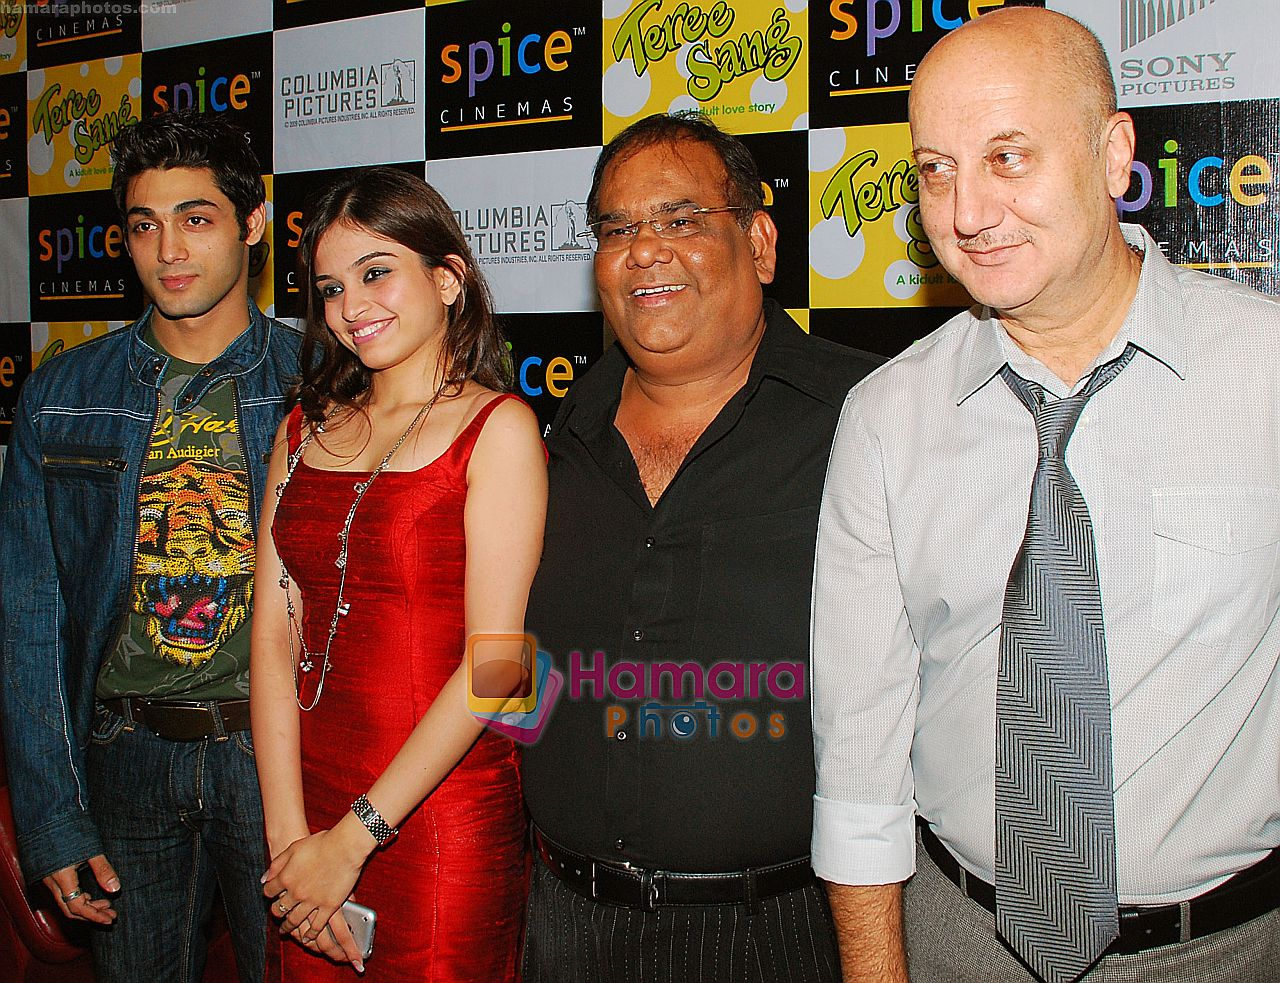 Satish Kaushik, Sheena, Ruslaan Mumtaz, Anupam Kher at the Press Conference and Premiere of film Teree Sang in Spice World, Noida on 6th Aug 2009